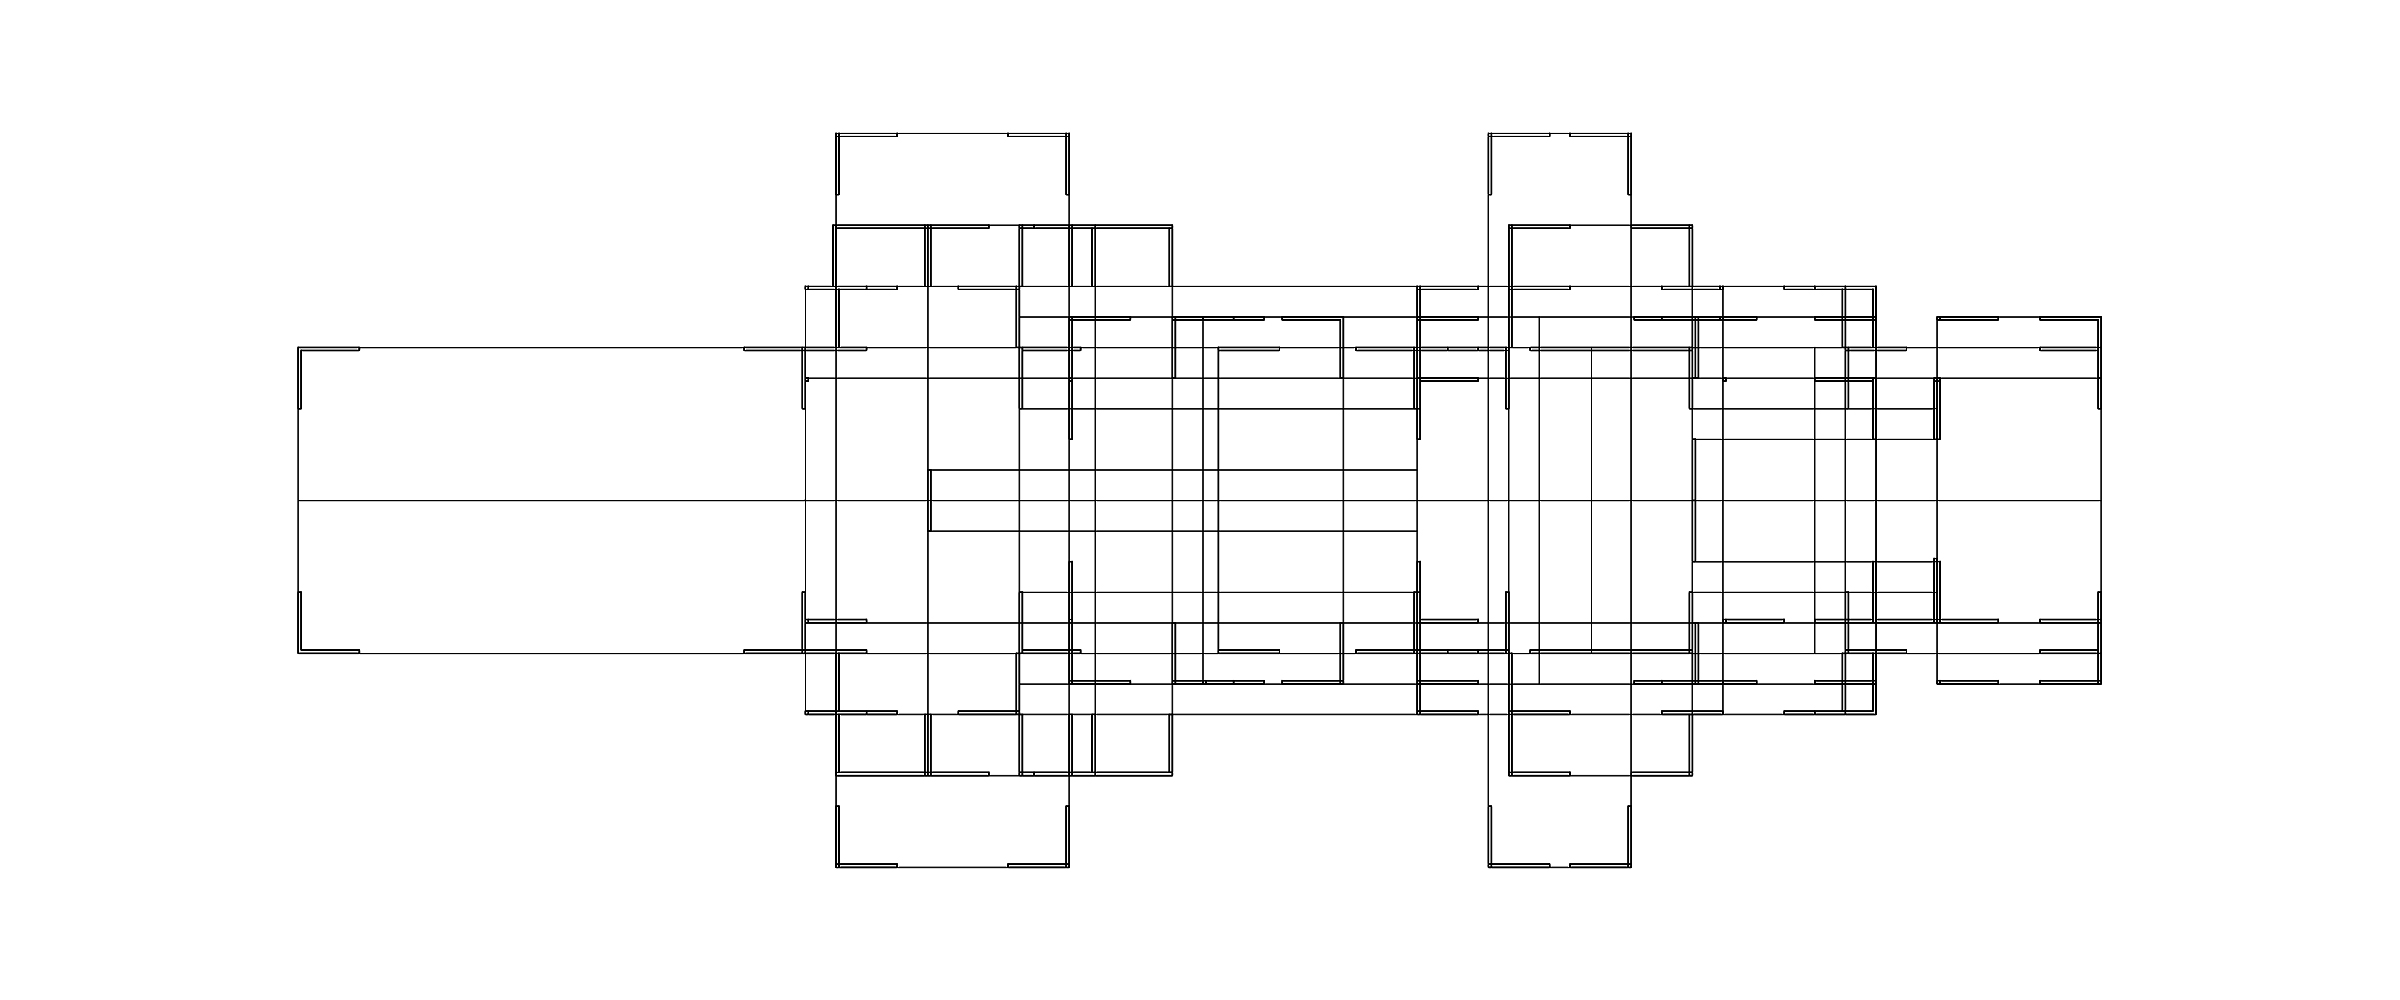 Mies Remix elevation